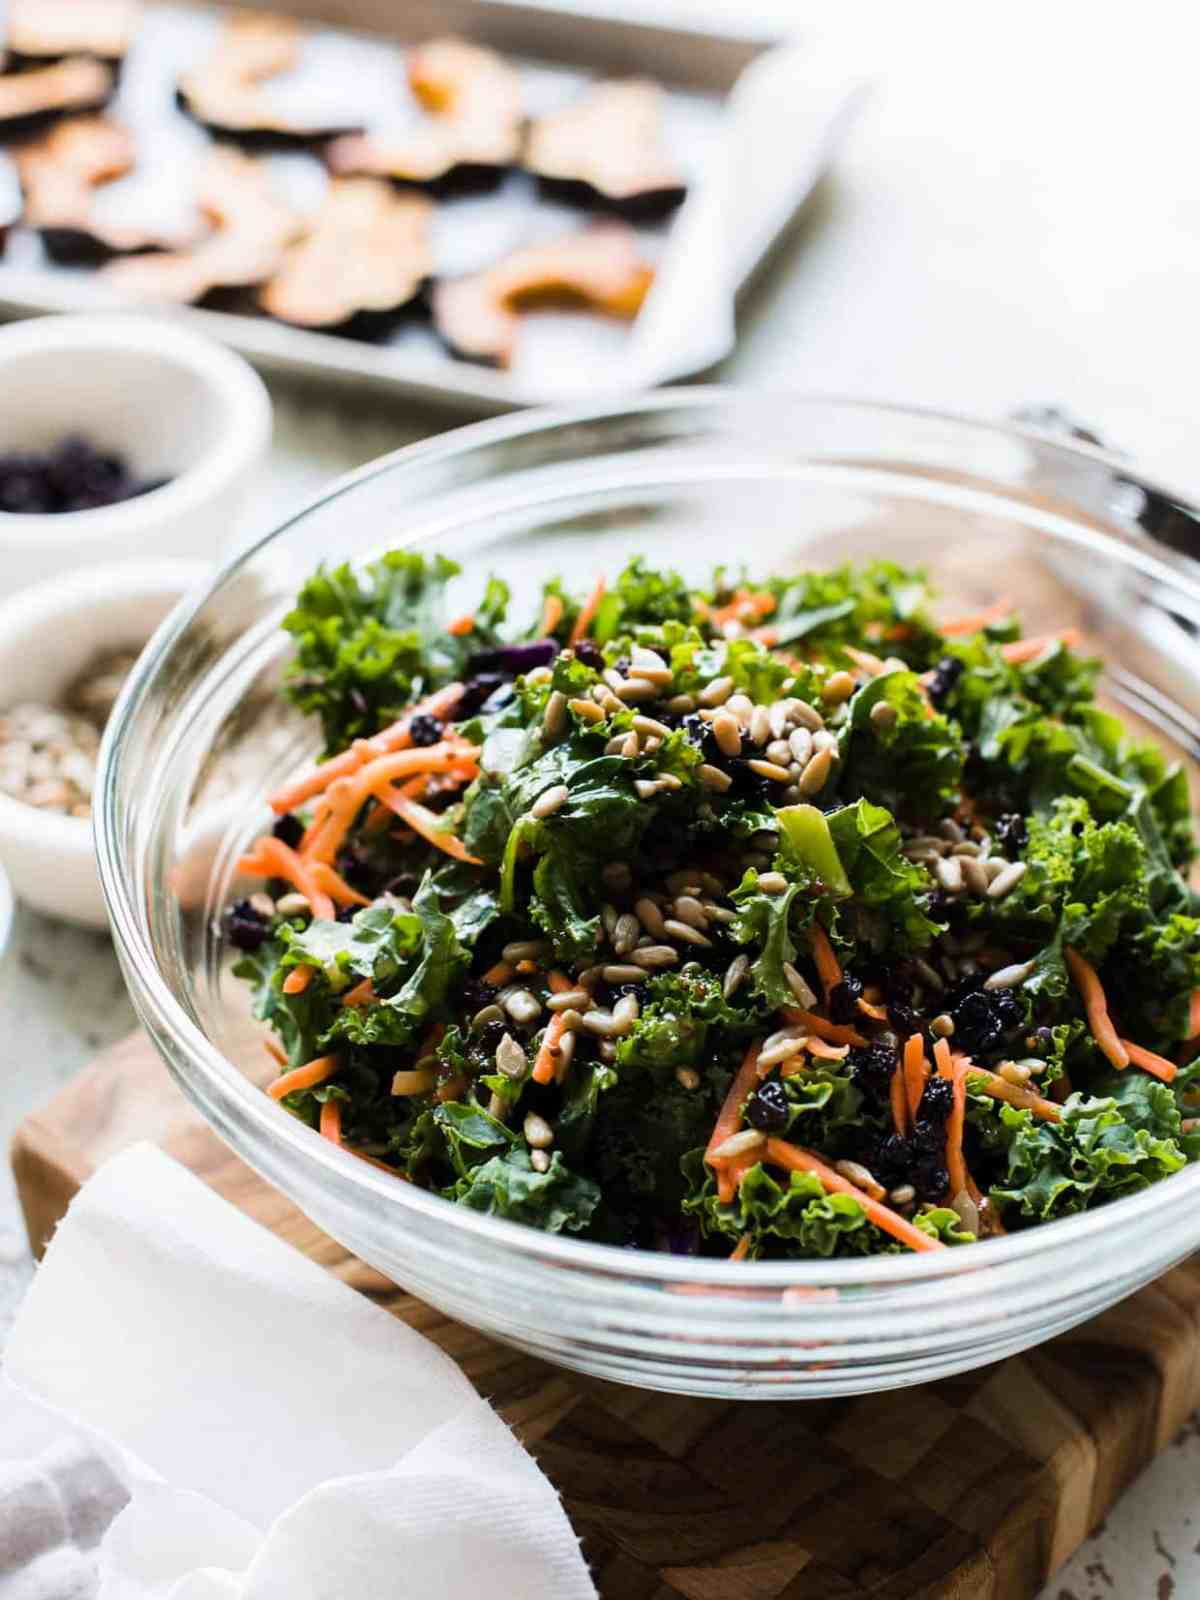 Kale salad with carrots, currants, and sunflower seeds in a glass bowl for Roasted Acorn Squash and Kale Salad.